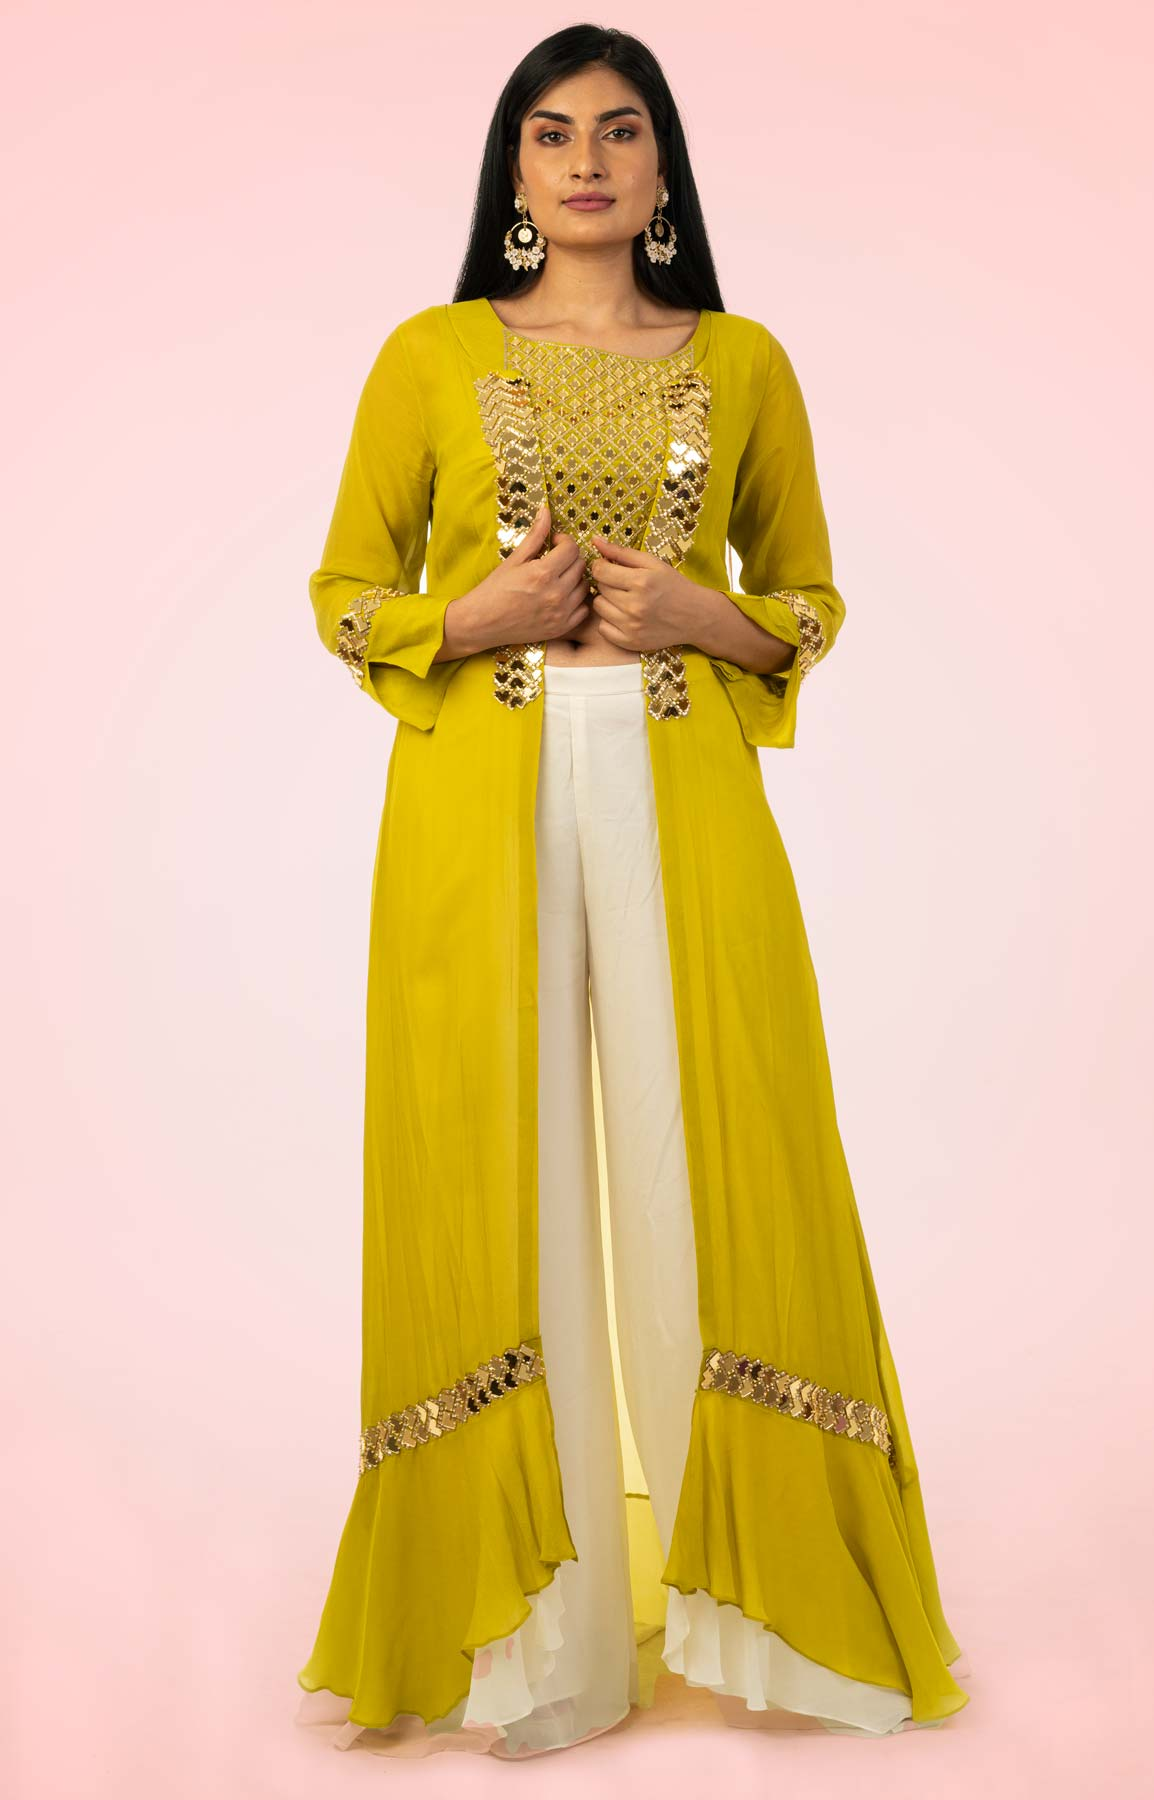 White Crepe Palazzo Suit Teamed With Mirror Work Crop Top and Jacket – Viraaya By Ushnakmals